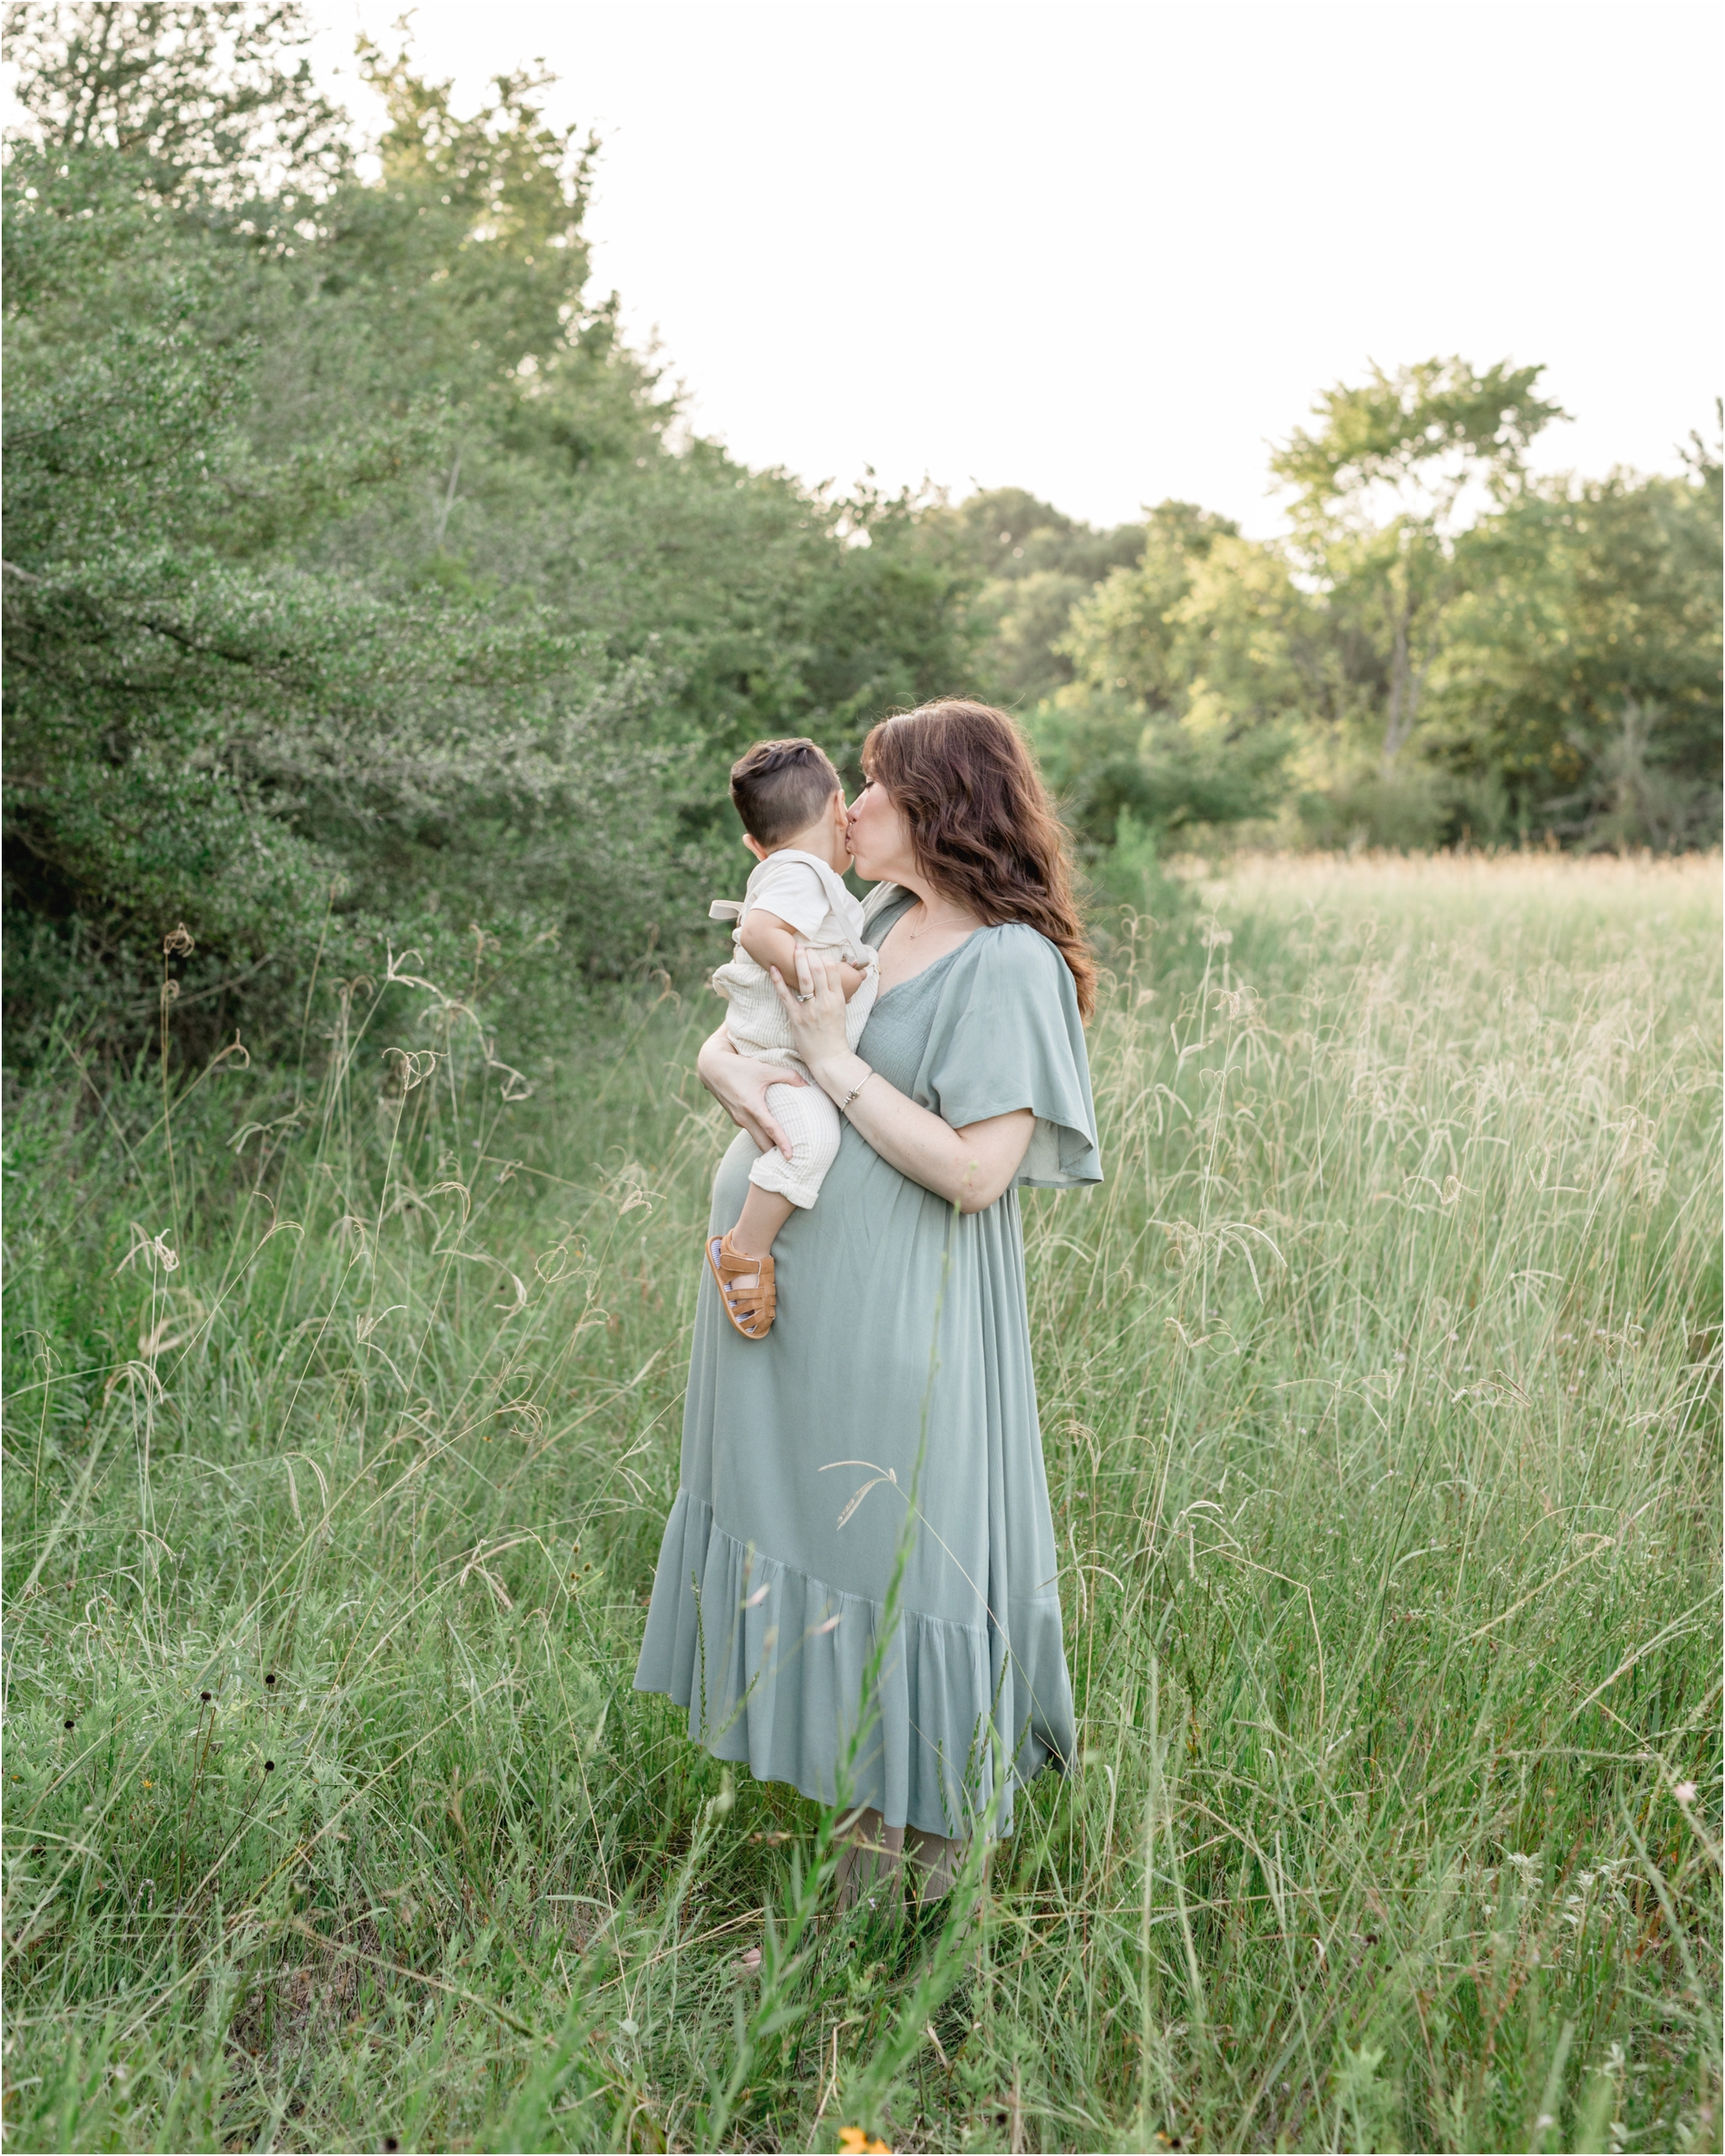 Dreamy maternity session in field with tall grass and Mama kissing toddler. Photo by Lifetime of Clicks Photography.